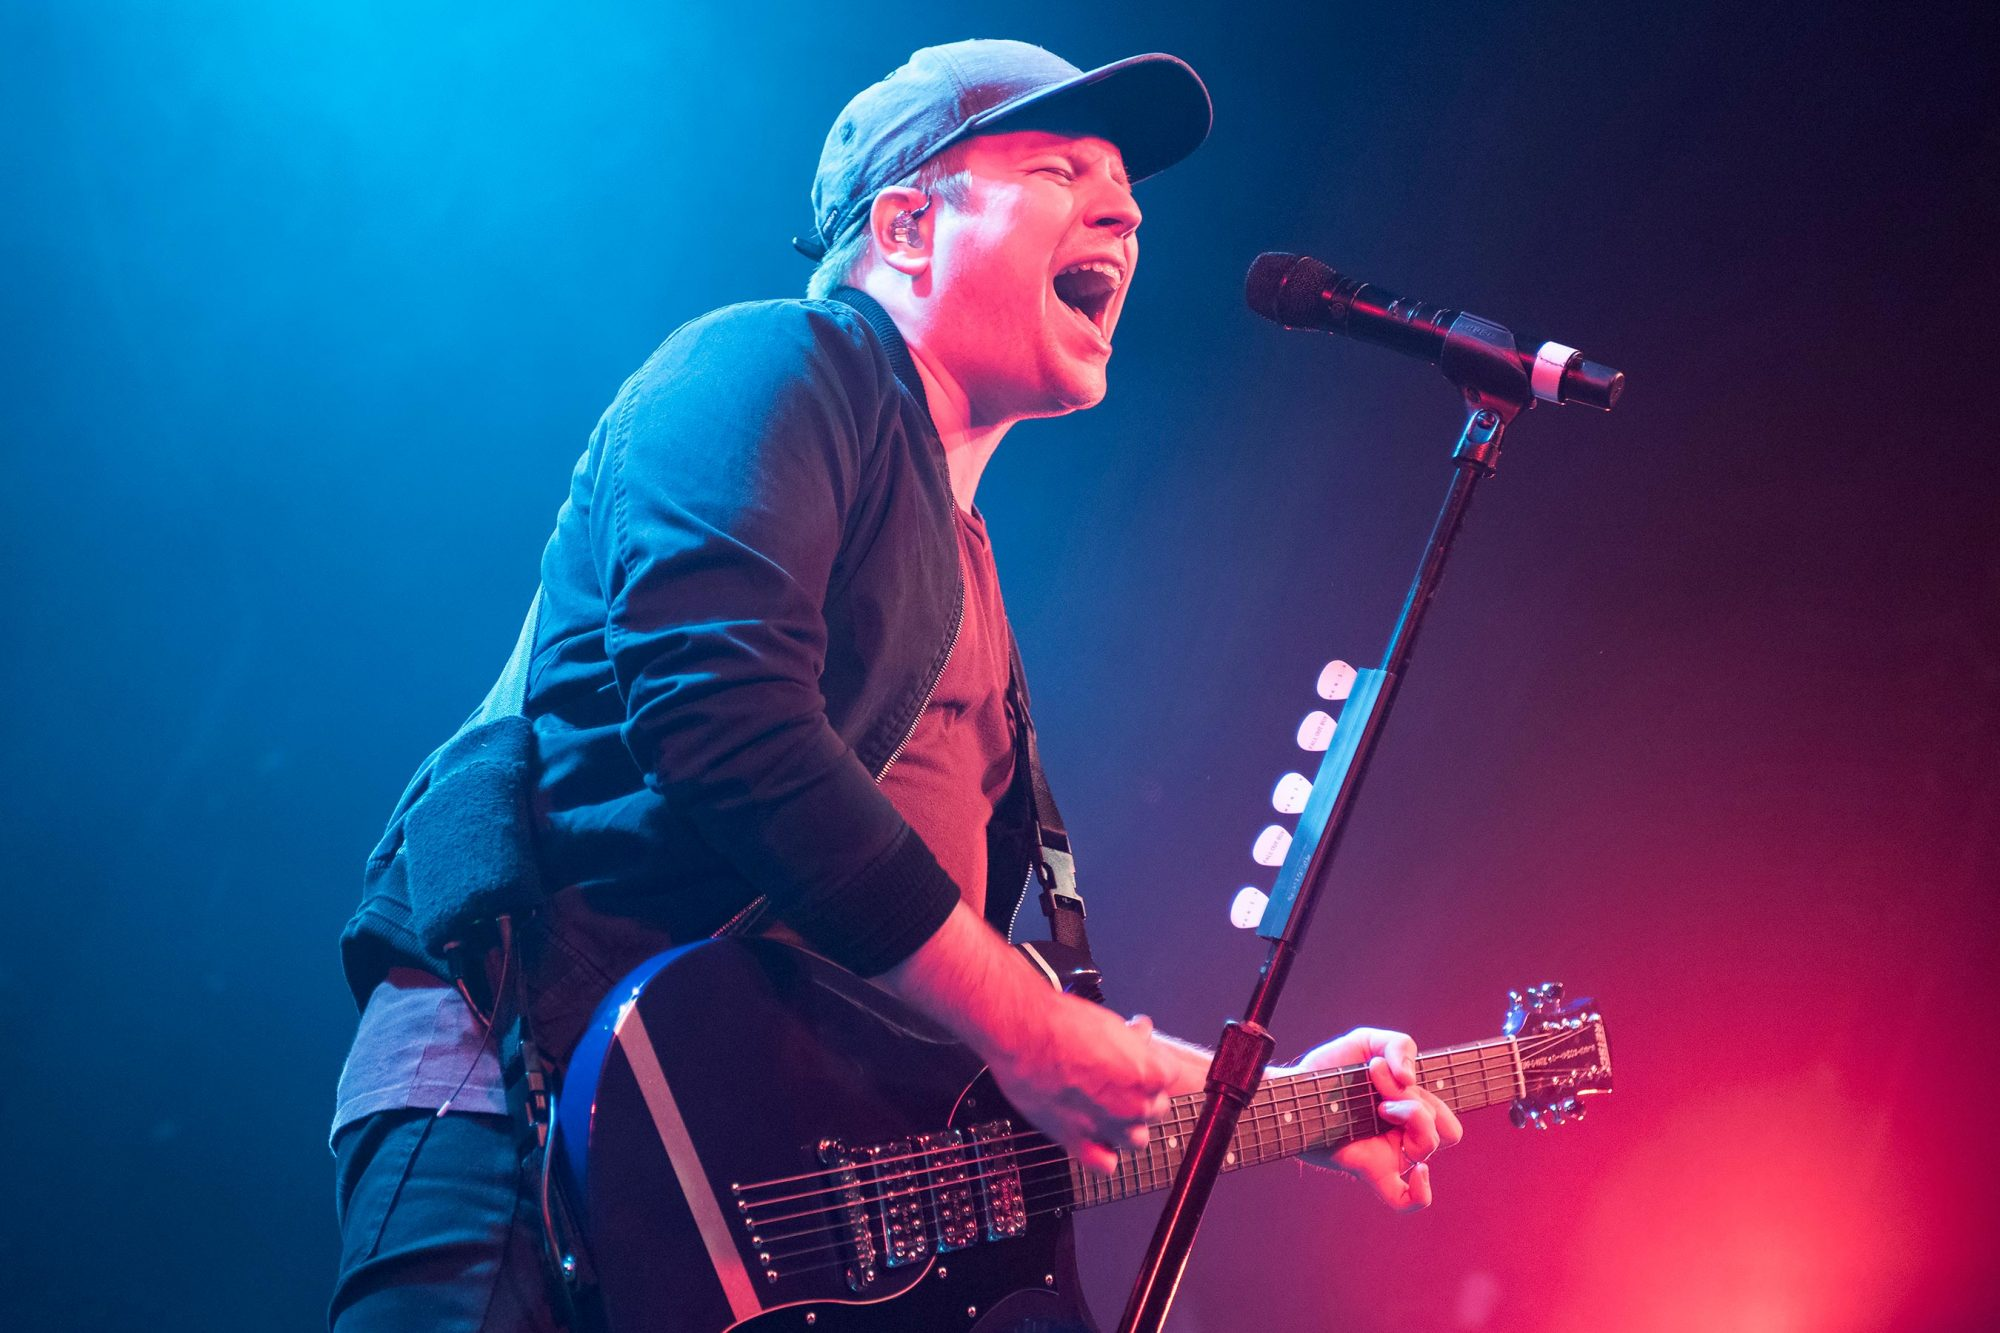 Fall Out Boy Perform At Electric Brixton, London